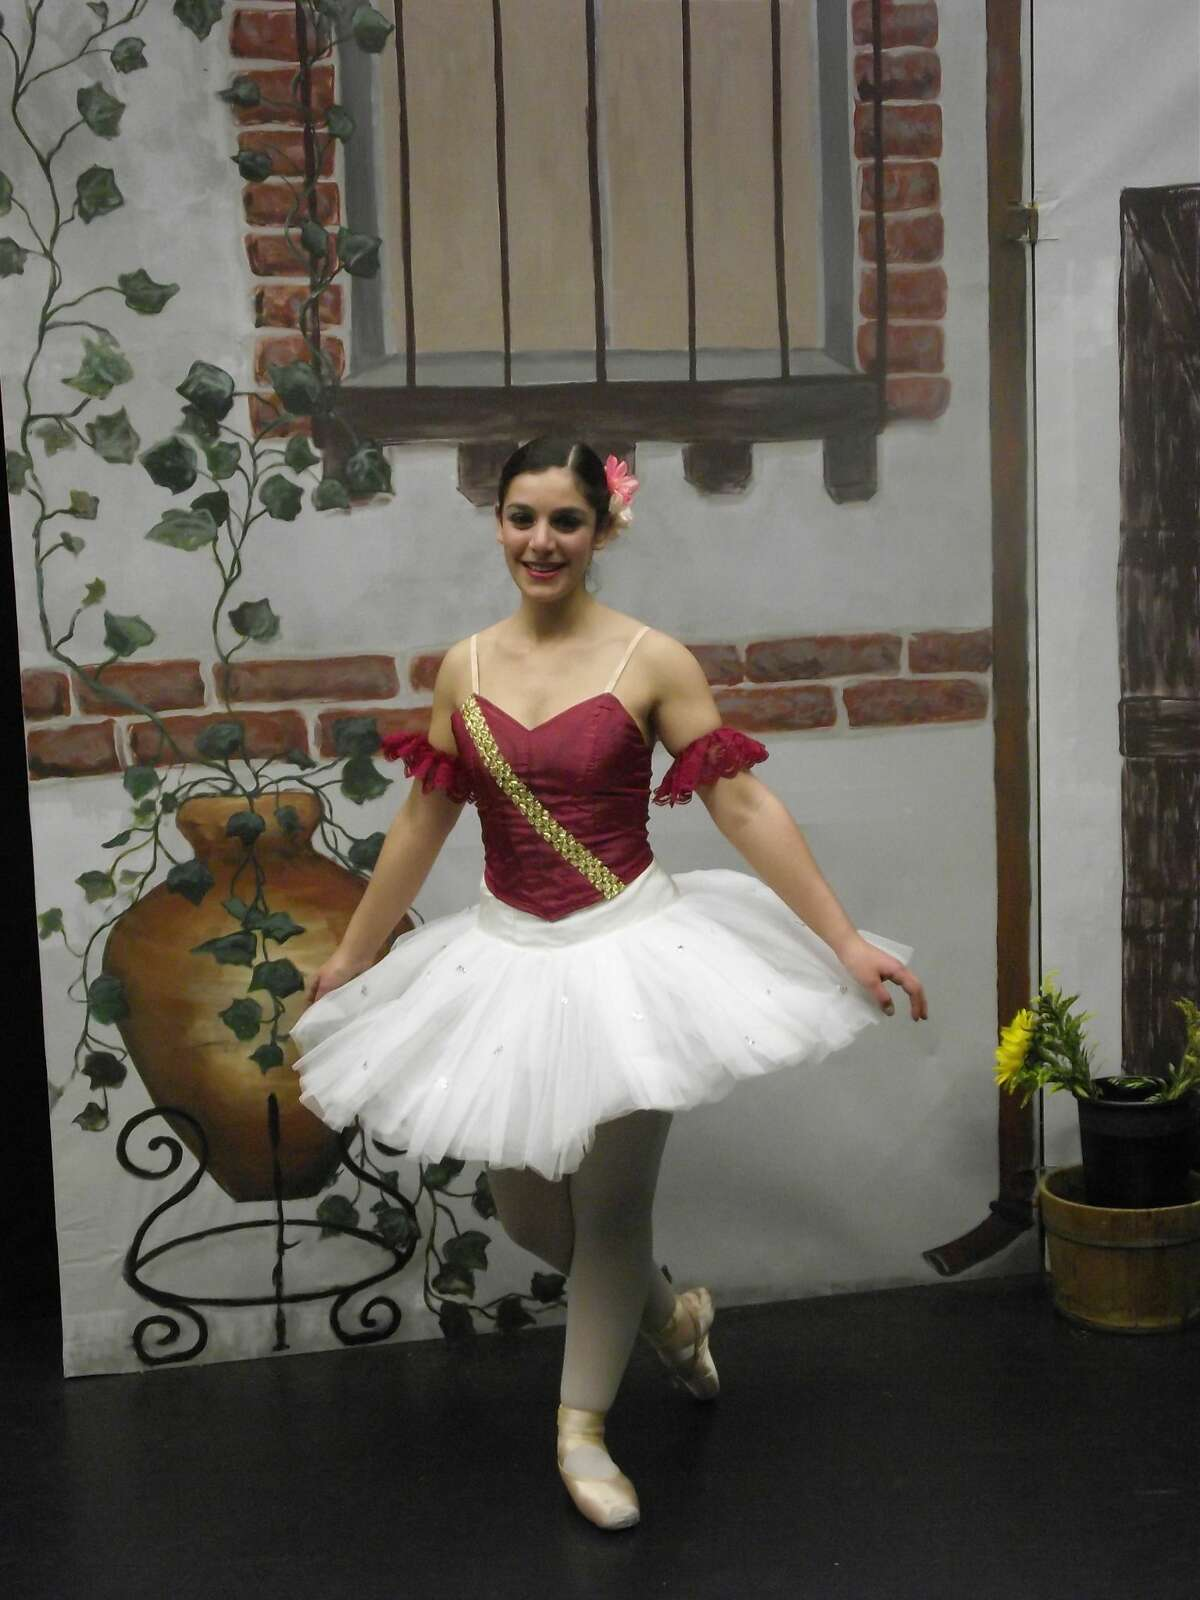 2. I grew up studying classical ballet. I wore tutus and point shoes. We performed full-length ballets - the 'Nutcracker' every winter and shows like 'A Midsummer's Night Dream' or 'Don Quixote' every spring.